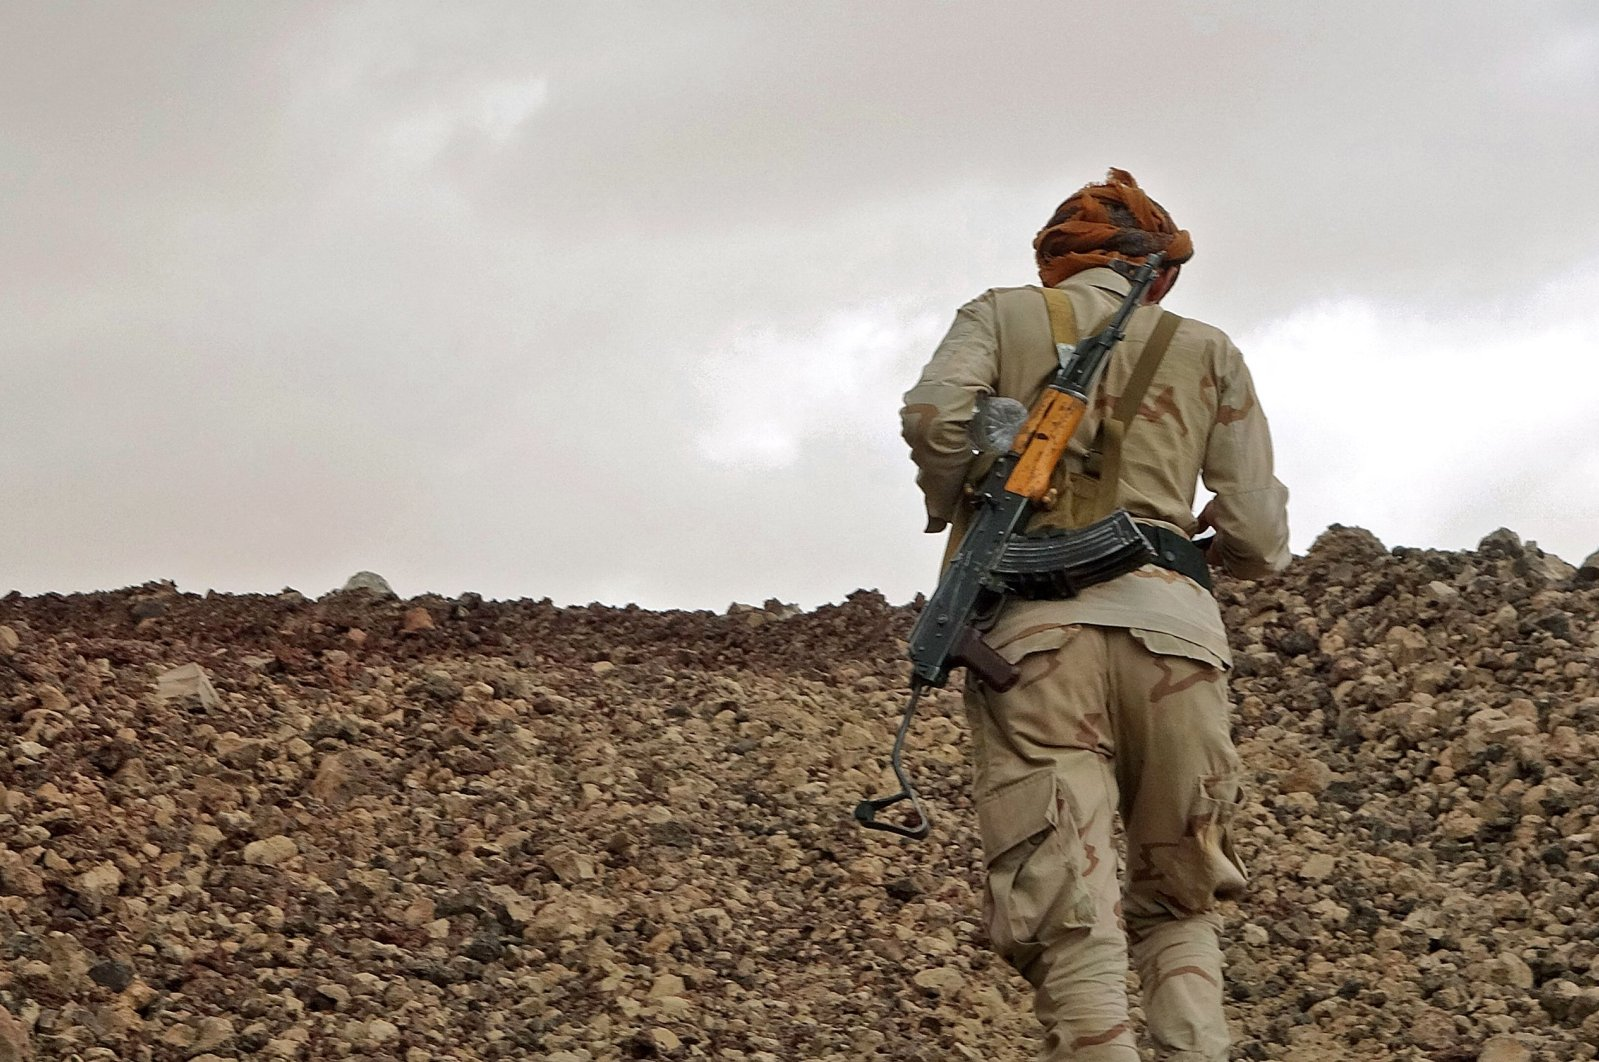 A fighter loyal to Yemen's Saudi-backed government mans a position near the front line facing Iran-backed Houthi rebels in the country's northeastern province of Marib, Yemen, April 27, 2021. (AFP Photo)